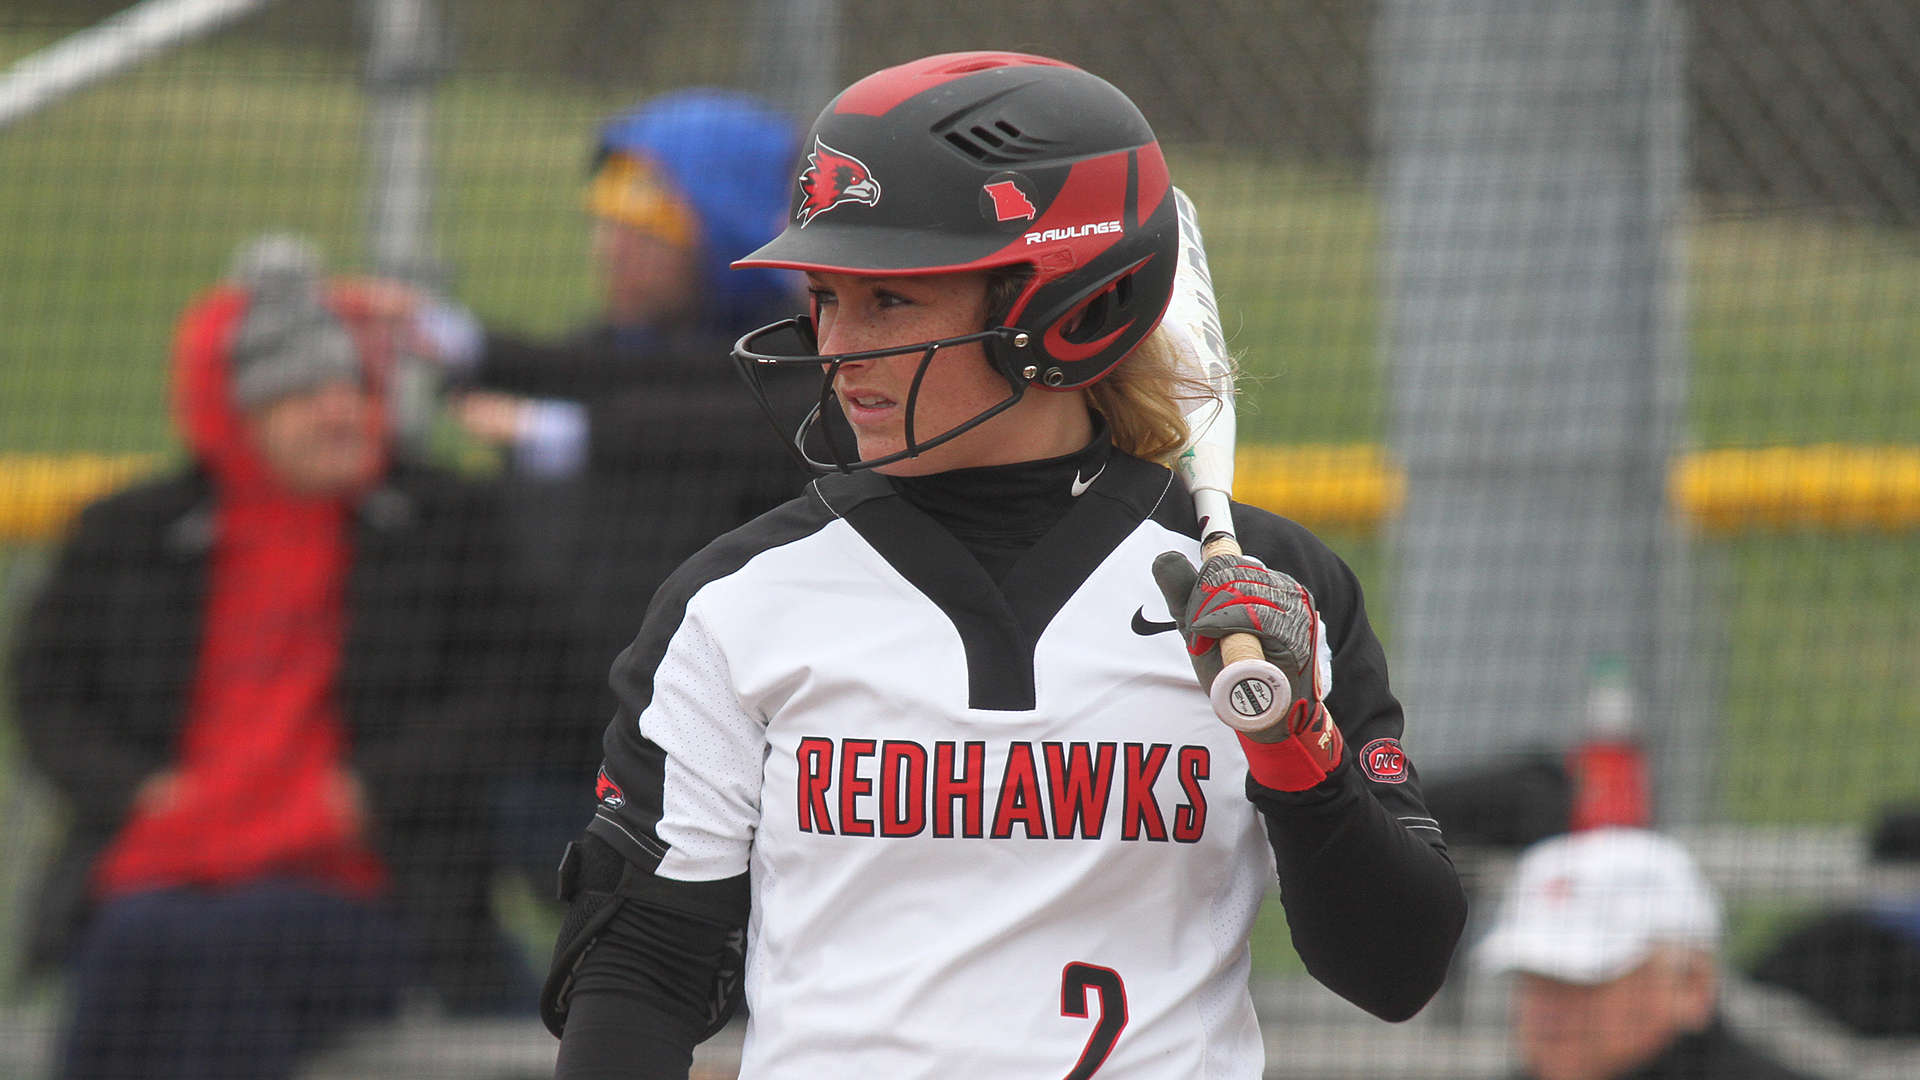 Redhawks Travel to OVC Leader Eastern Illinois Wednesday 1920x1080